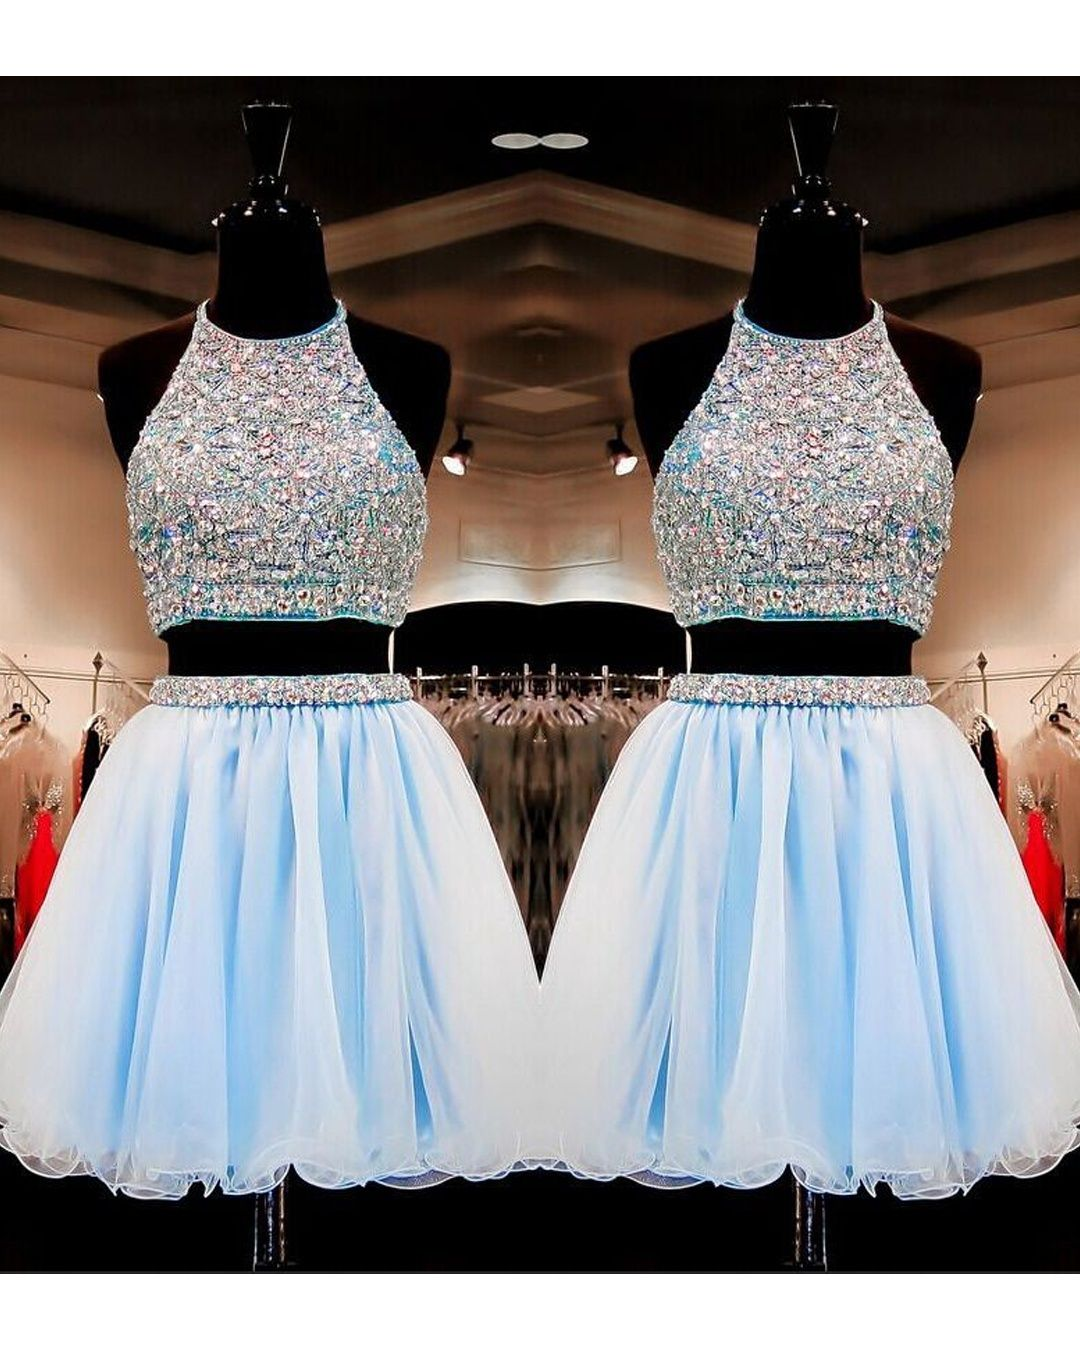 Sweet 16 Gowns Light Sky Blue Tulle Short Homecoming Dresses Dress 2 Pieces With Beading Hc0036 Homecoming Dresses Short Sweet Sixteen Dresses Sweet 16 Dresses Short [ 1350 x 1080 Pixel ]